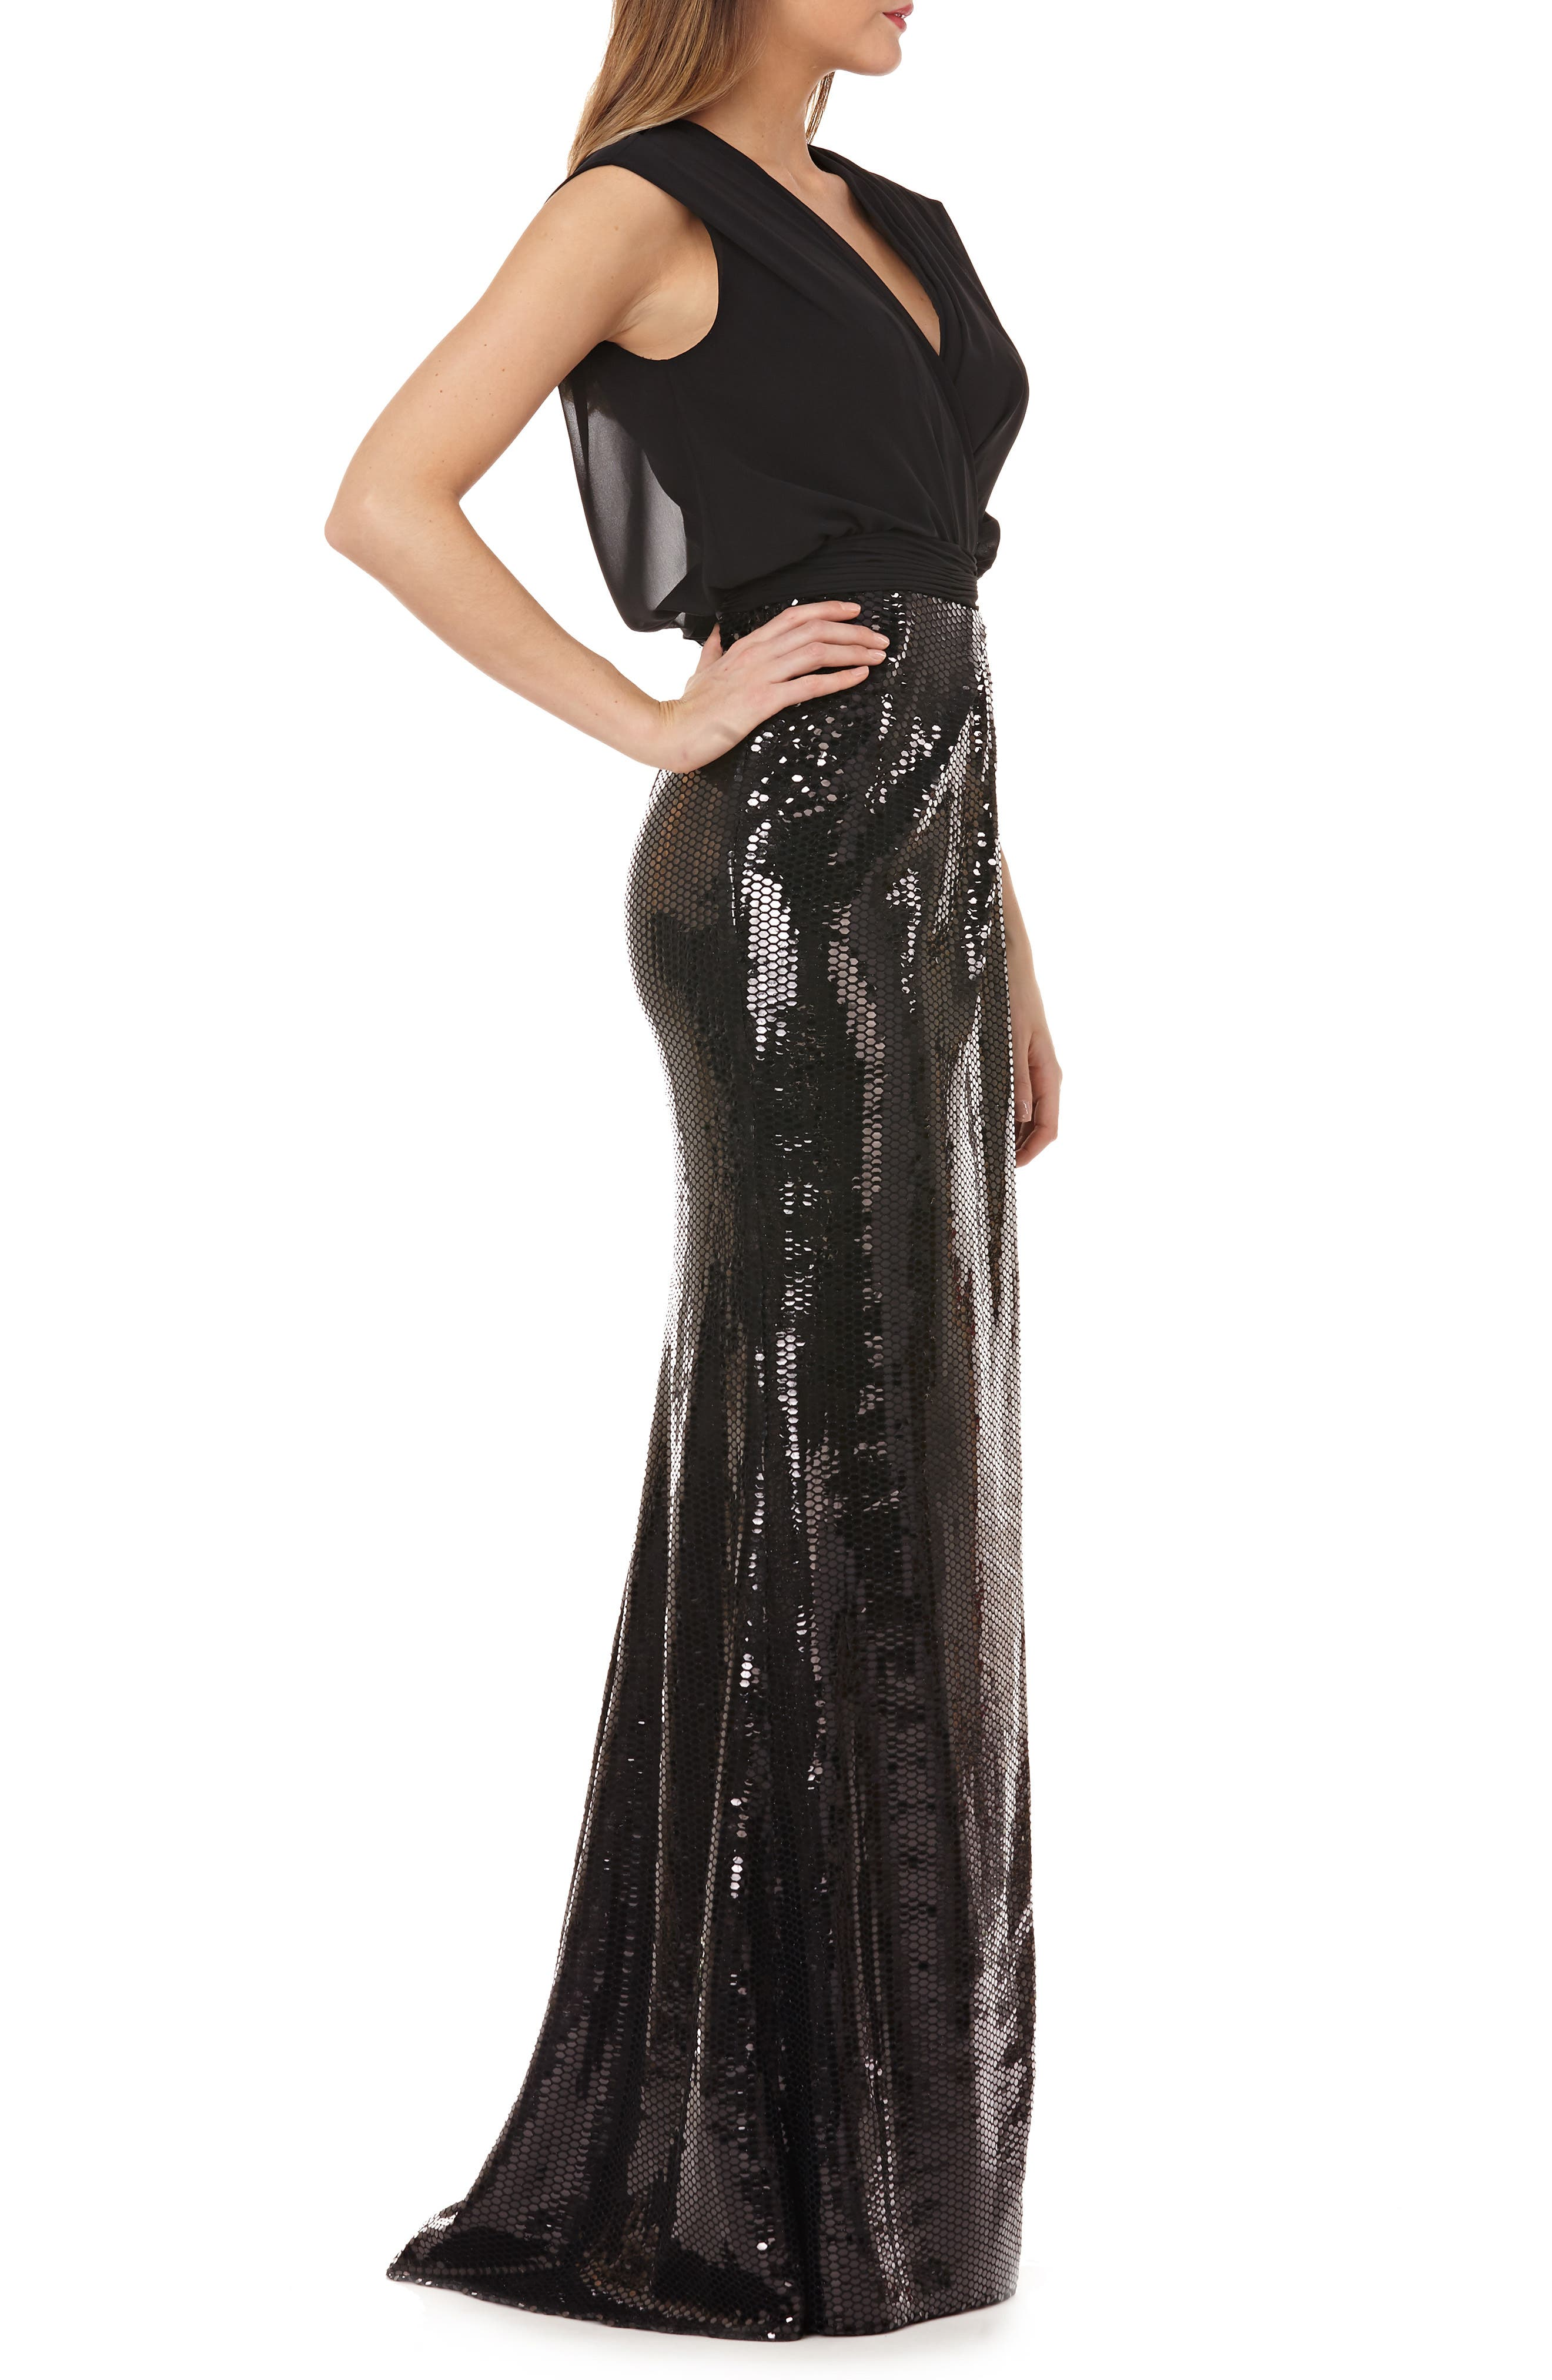 KAY UNGER, Sequin Gown, Alternate thumbnail 3, color, 001